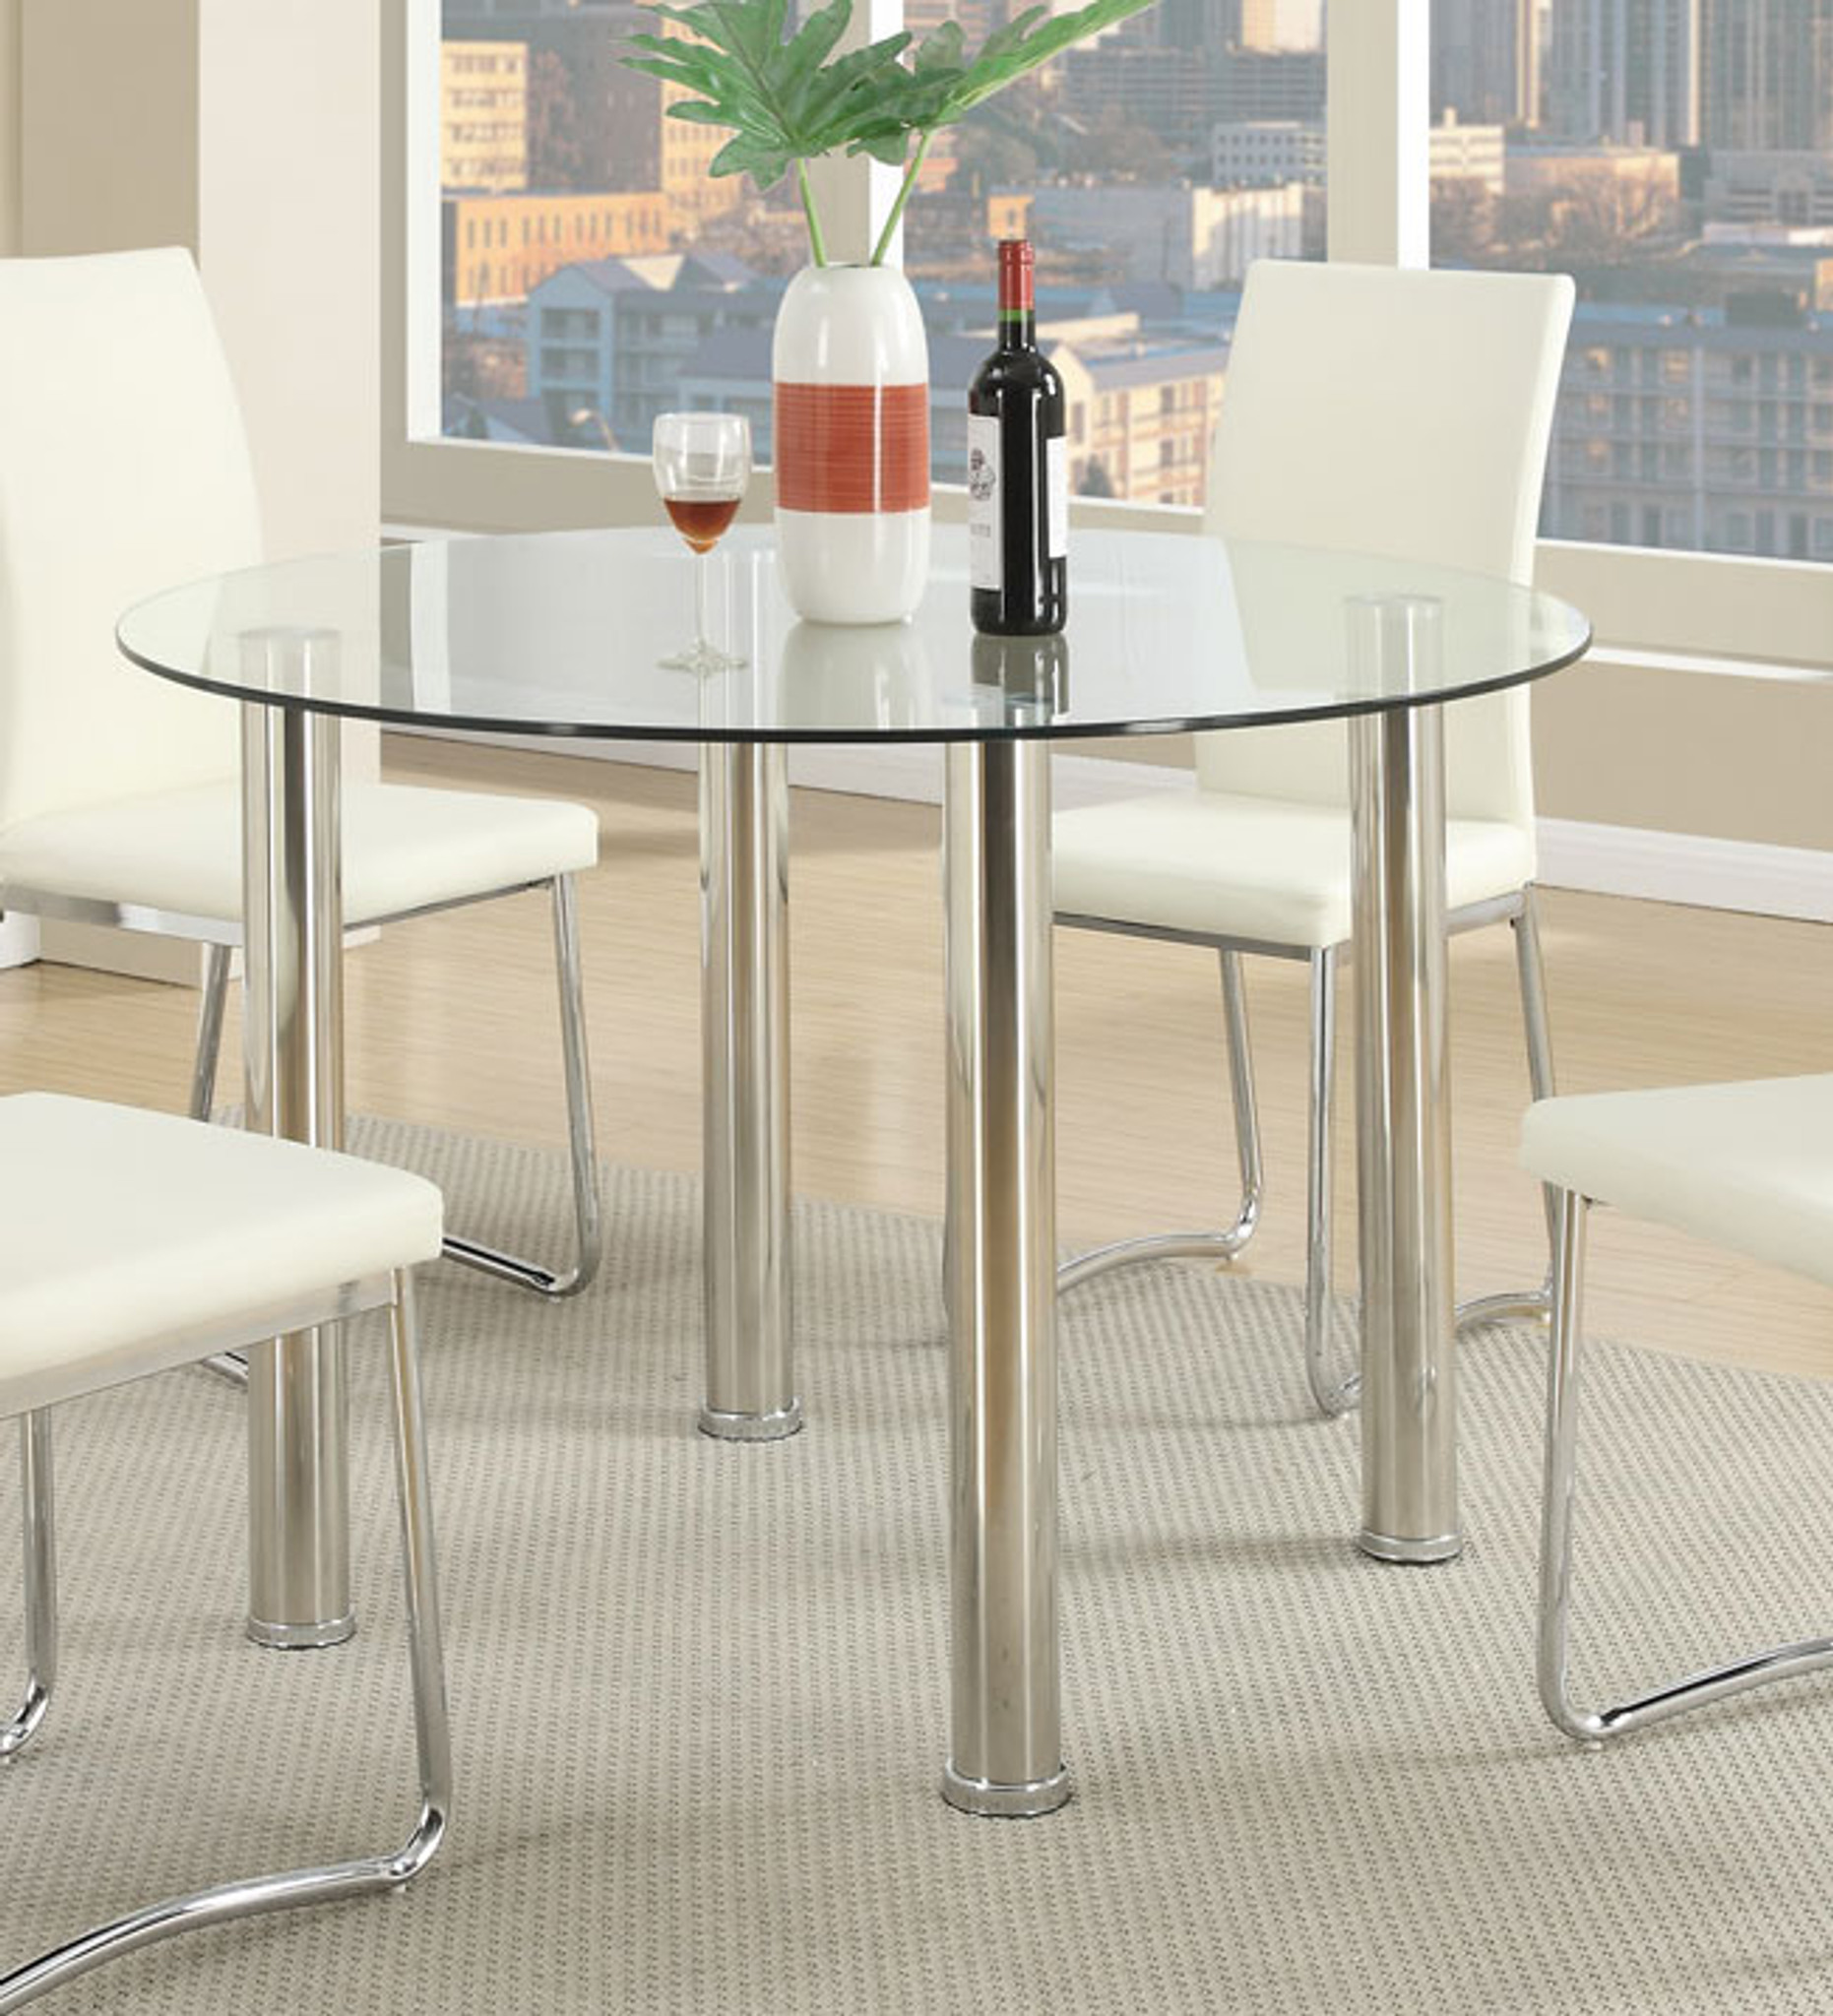 MODERN ROUND DINING TABLE F2200